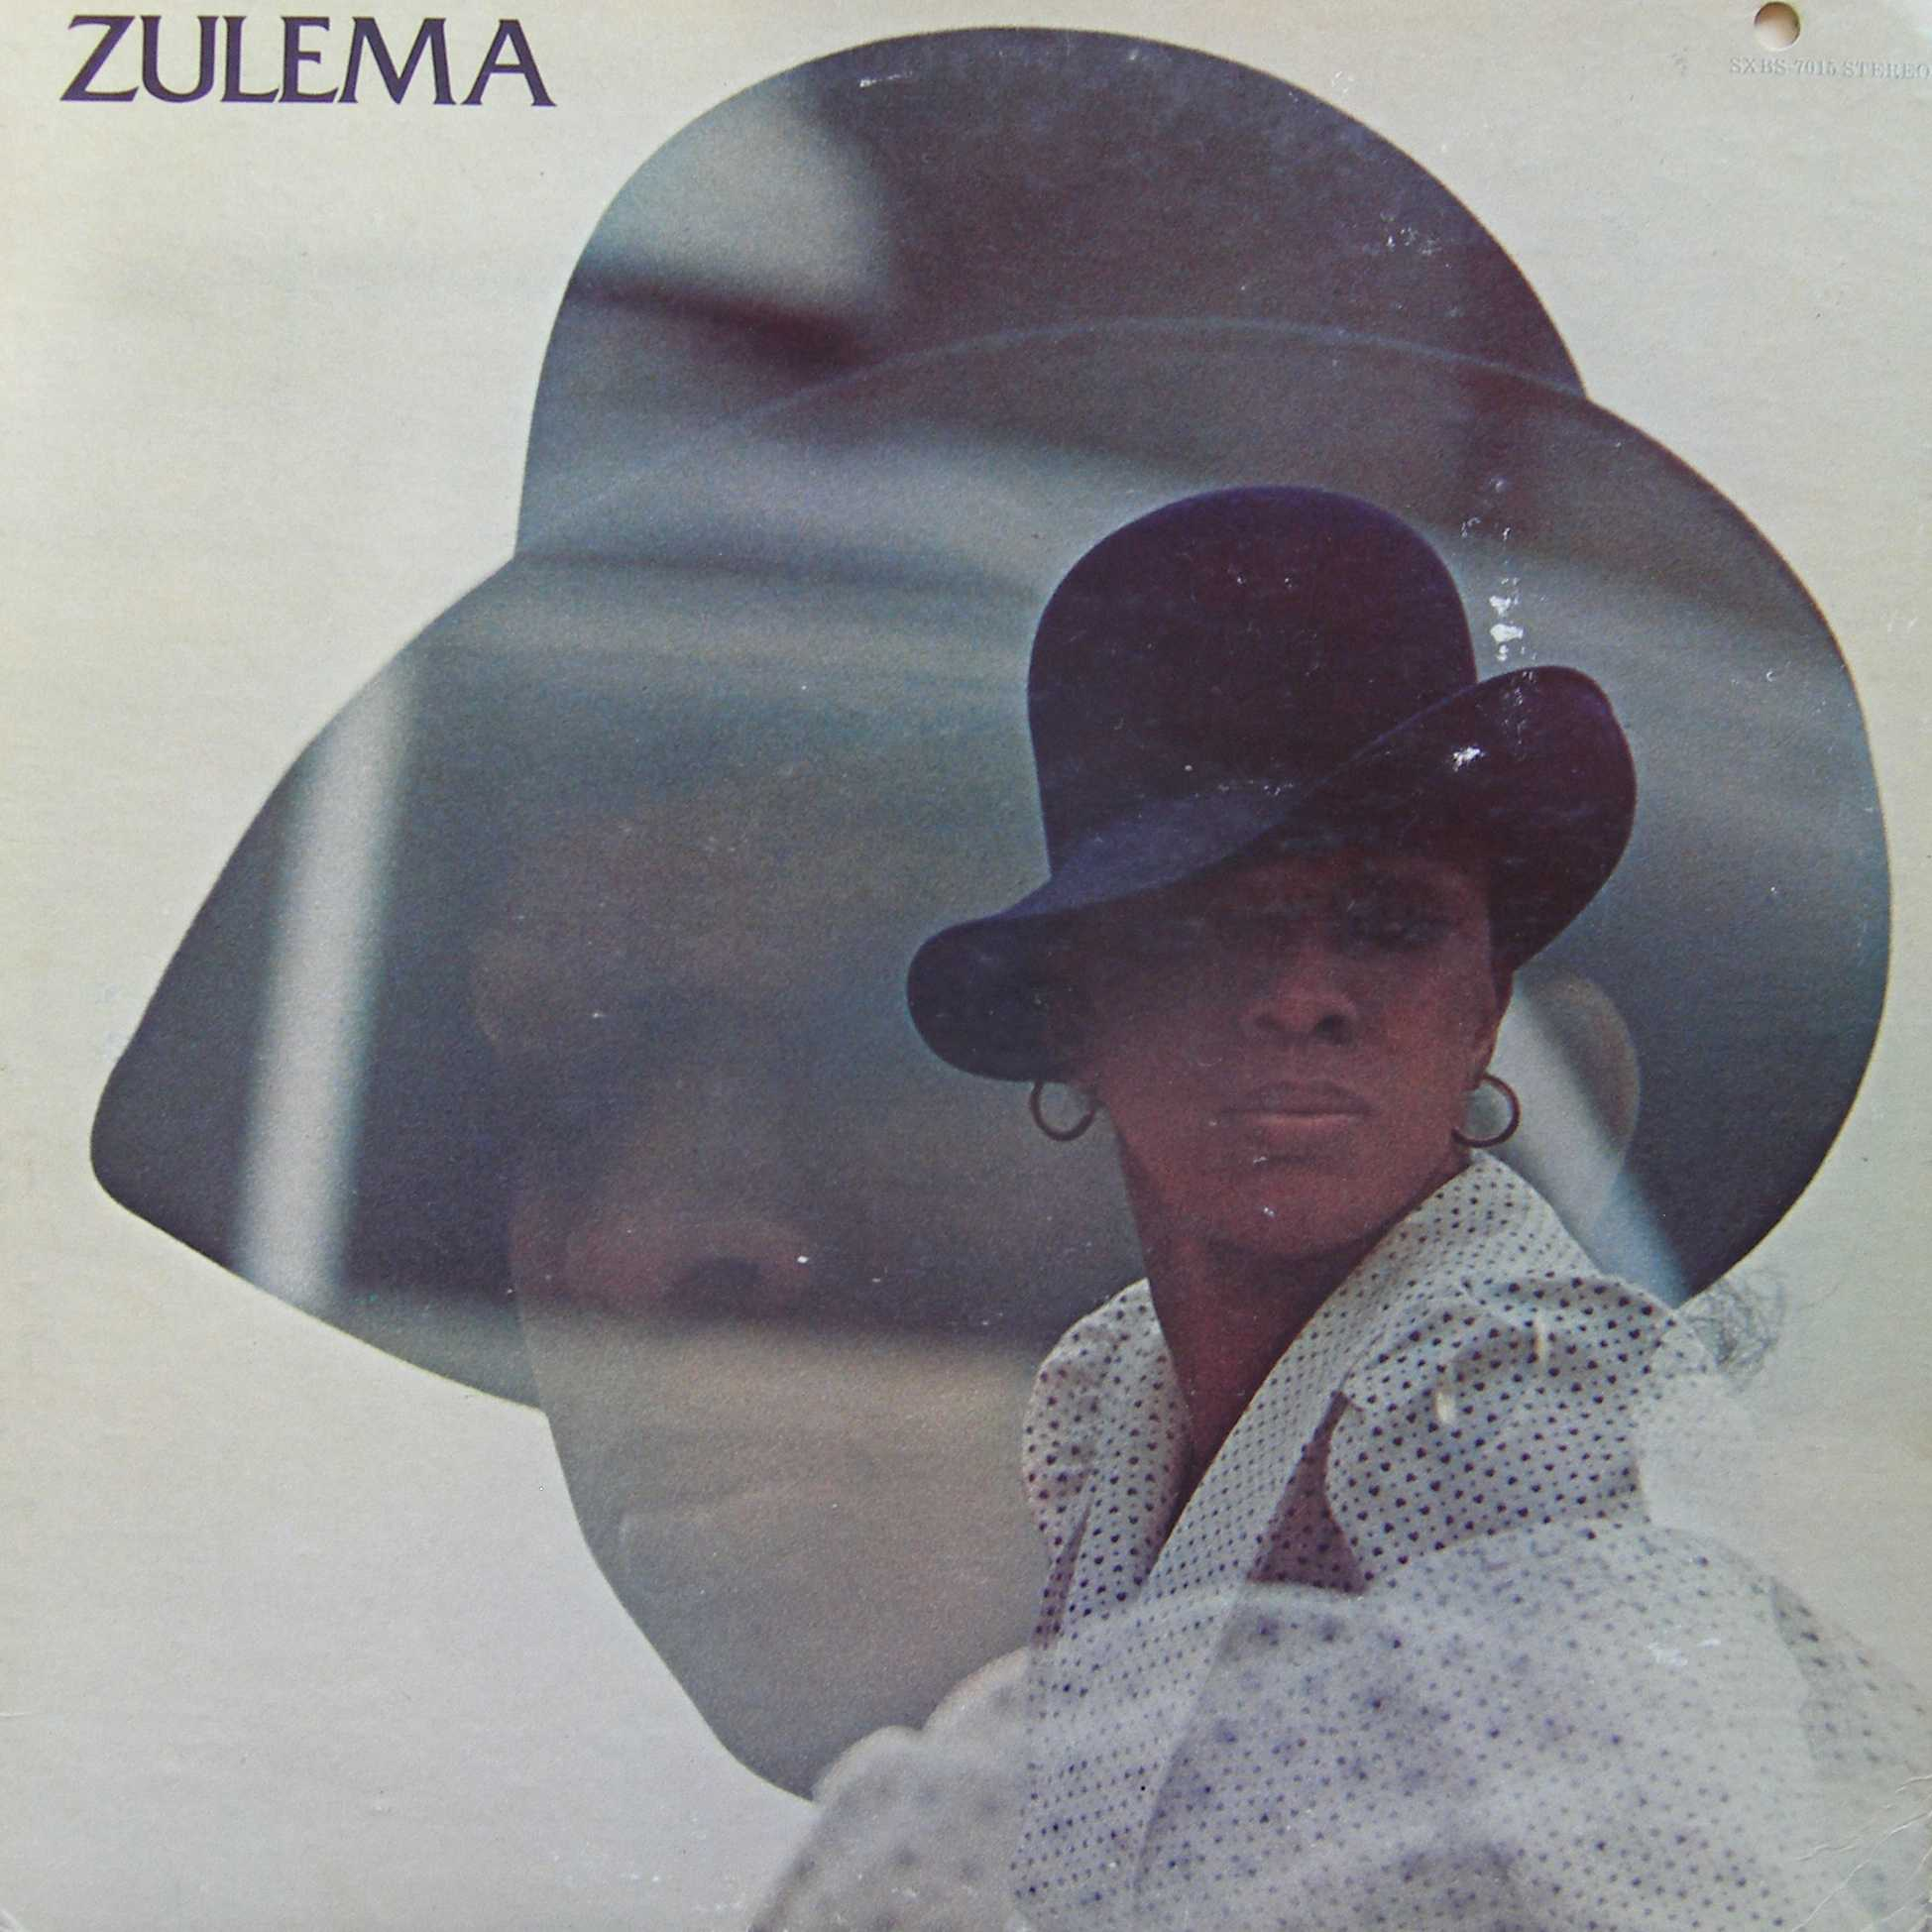 Zulema Sussex